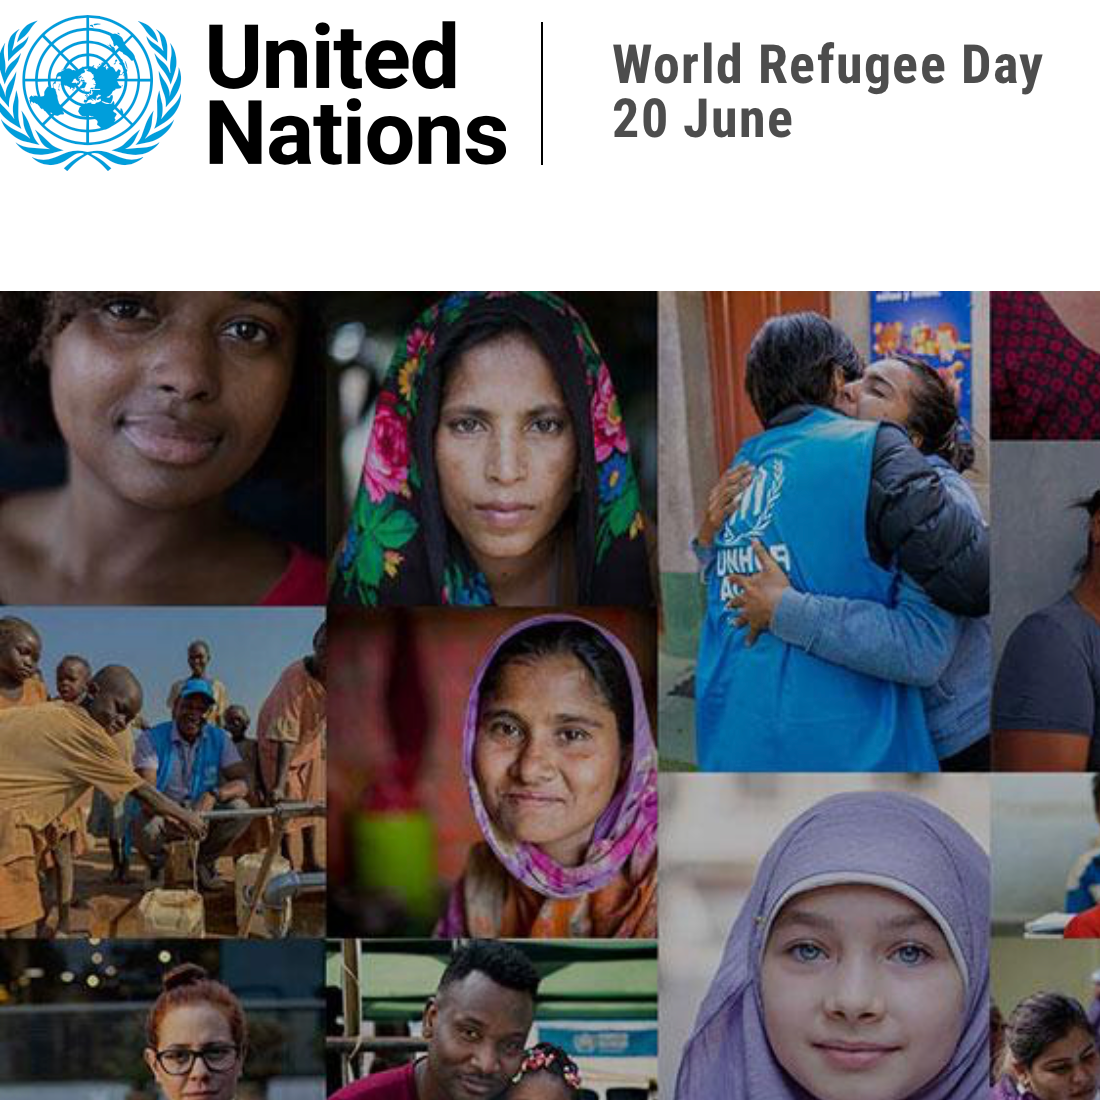 Every Refugee is a Hero - World Refugee Day 2020